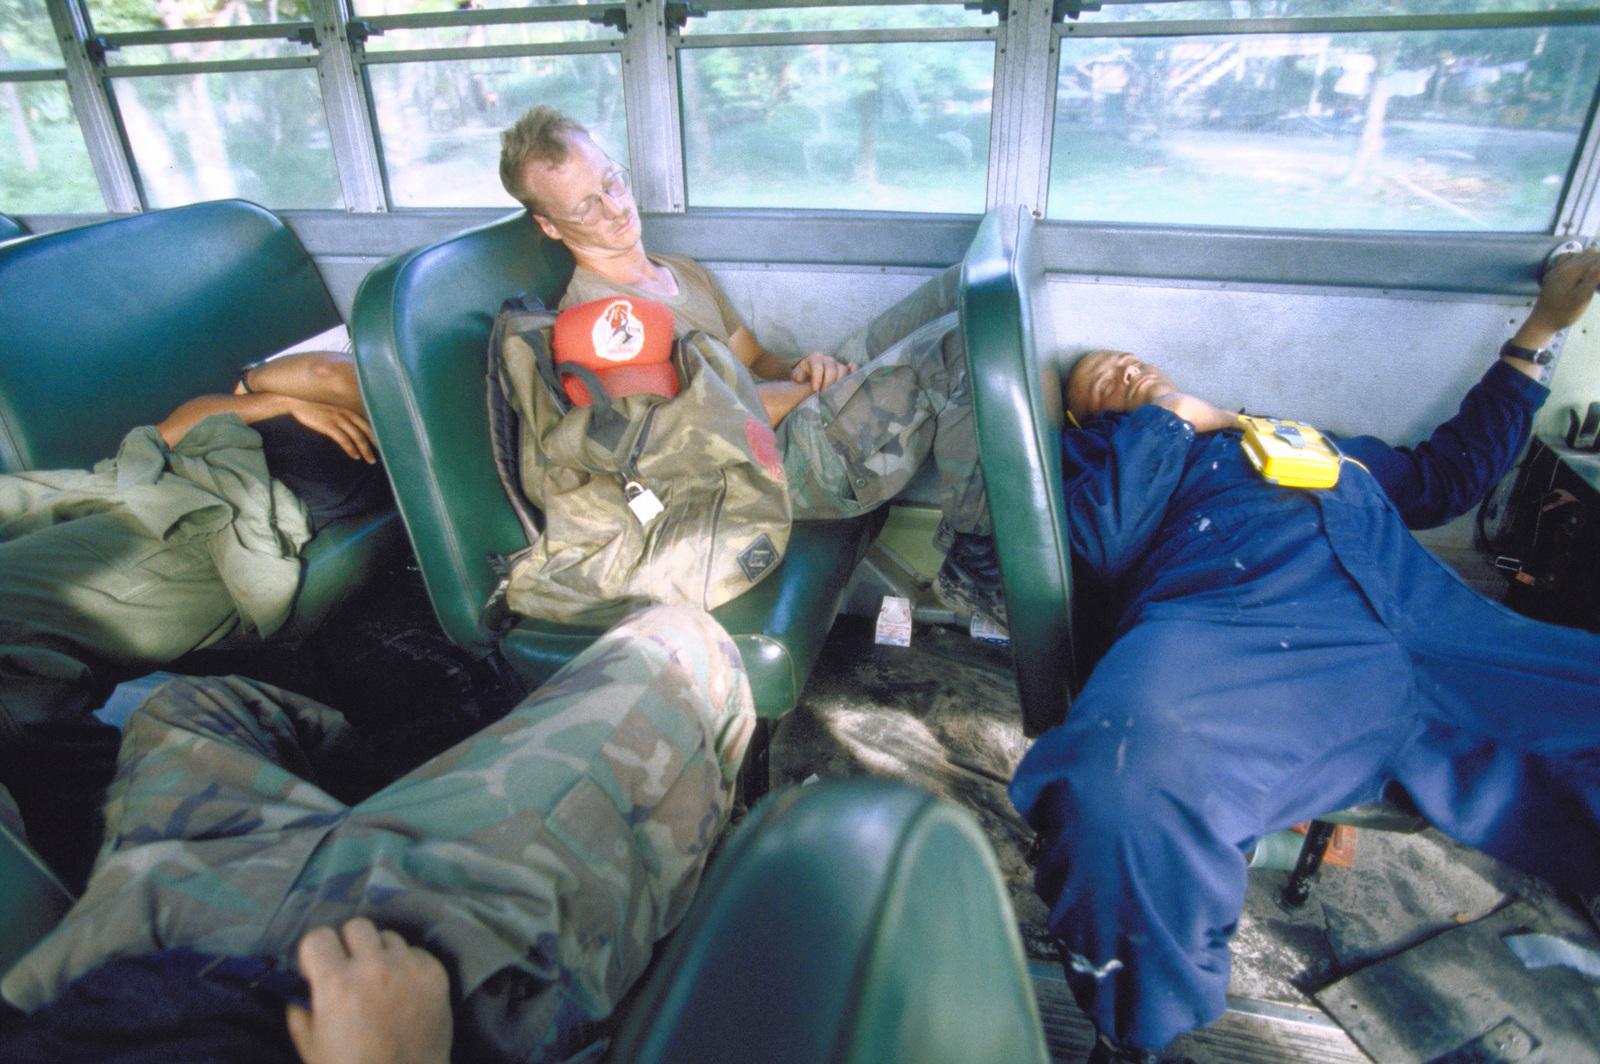 Member of the 820th Red Horse Squadron, Nellis Air Force Base, Nevada and Marines assigned to the 274th Marine Support Squadron, Cherry Point, N.C., after a hard day's work, sleep on the bus trip back to Camp Stephenson. The workers are returning from renovating the Ascension Community High School in Georgetown as part of the this first combined humanitarian and civic assistance exercise conducted between the United States and Guyana. Military personnel from Air Force, Air Force Reserve & National Guard, Army, Army National Guard and Marine Corps participated in the exercise which included engineering and medical readiness training